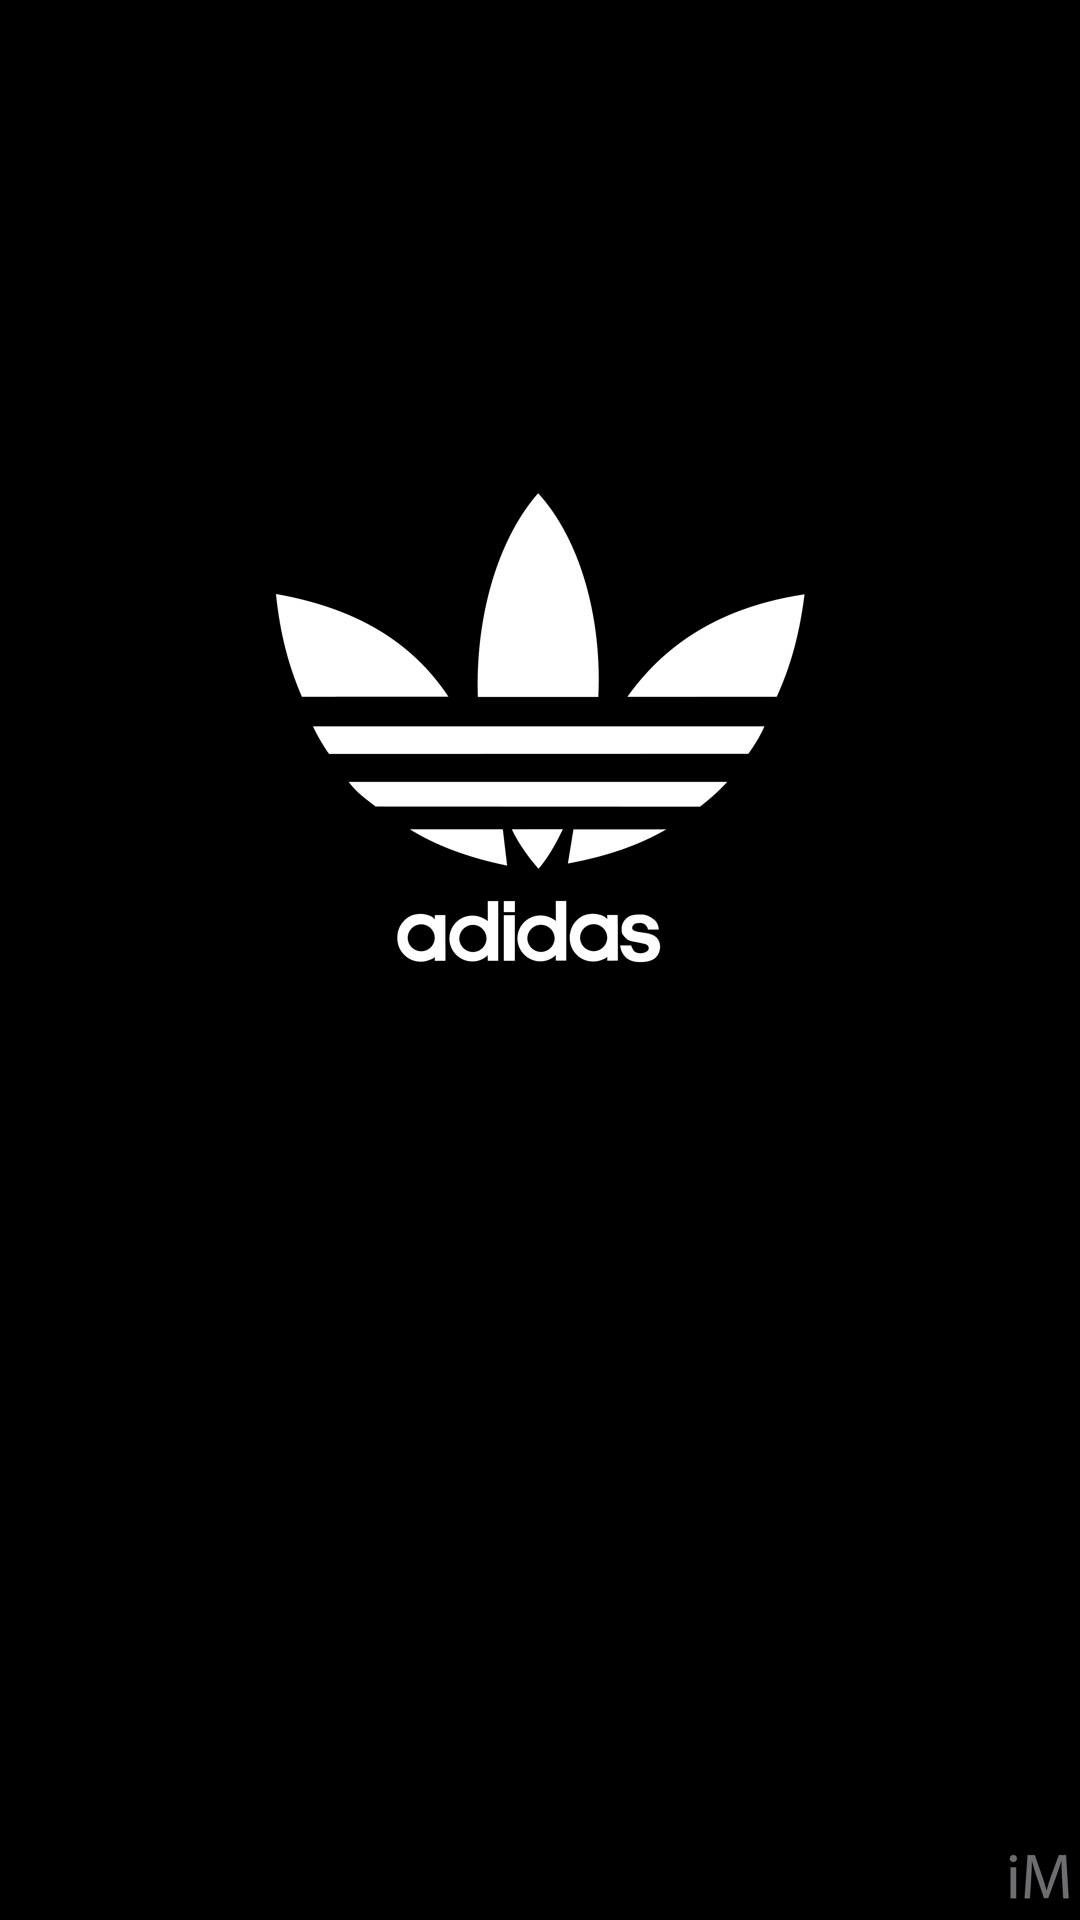 Pin by Brittany on Wallpaper Adidas logo